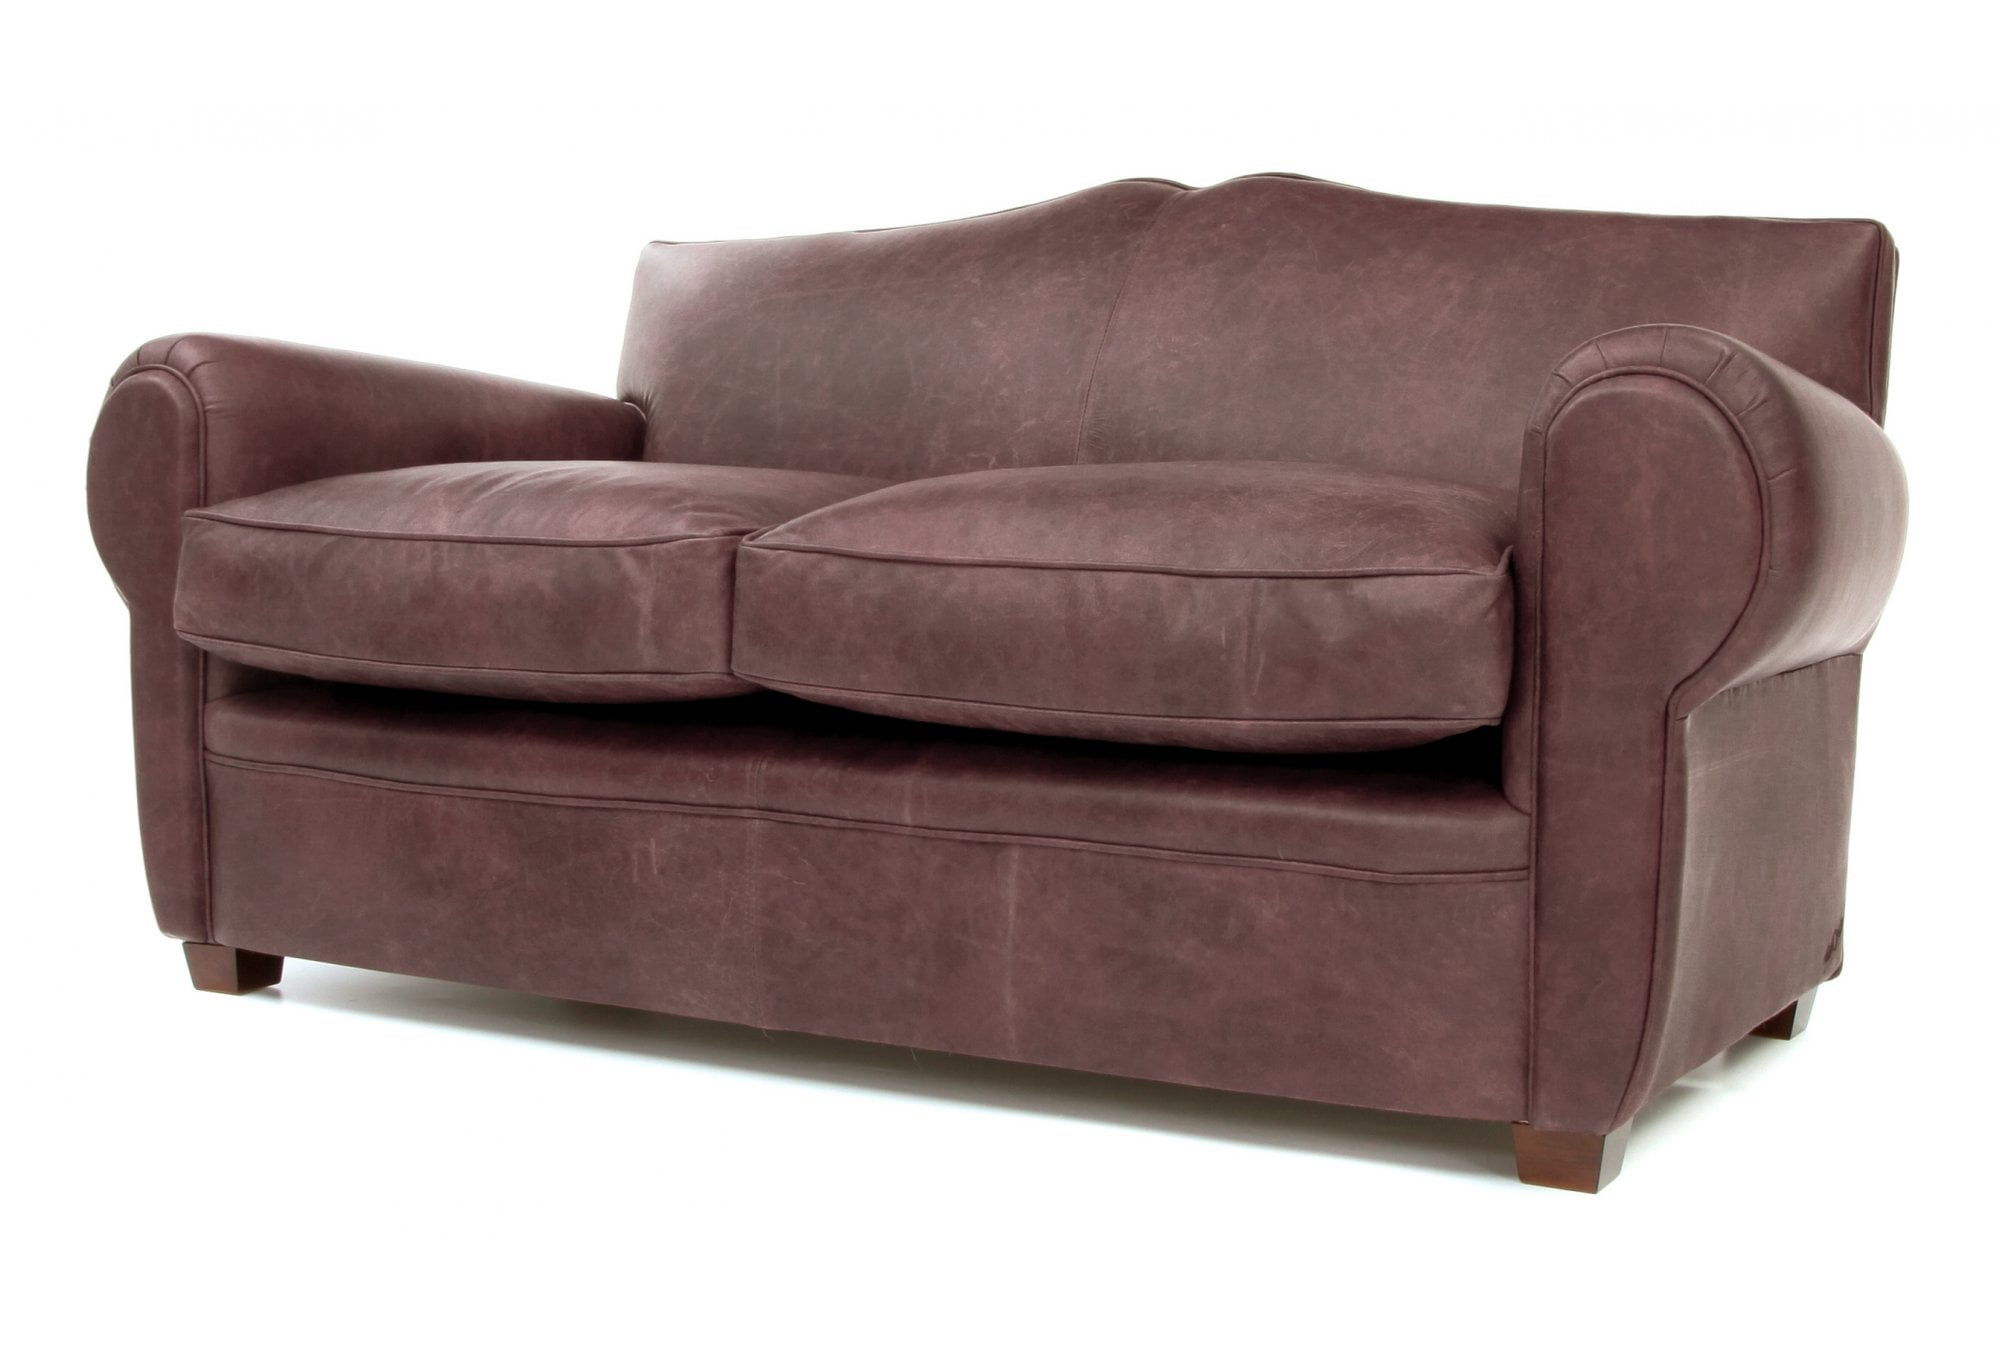 Old Lace | Vintage Leather Small 2 Seater Sofa From Old Within Two Seater Sofas (View 6 of 15)